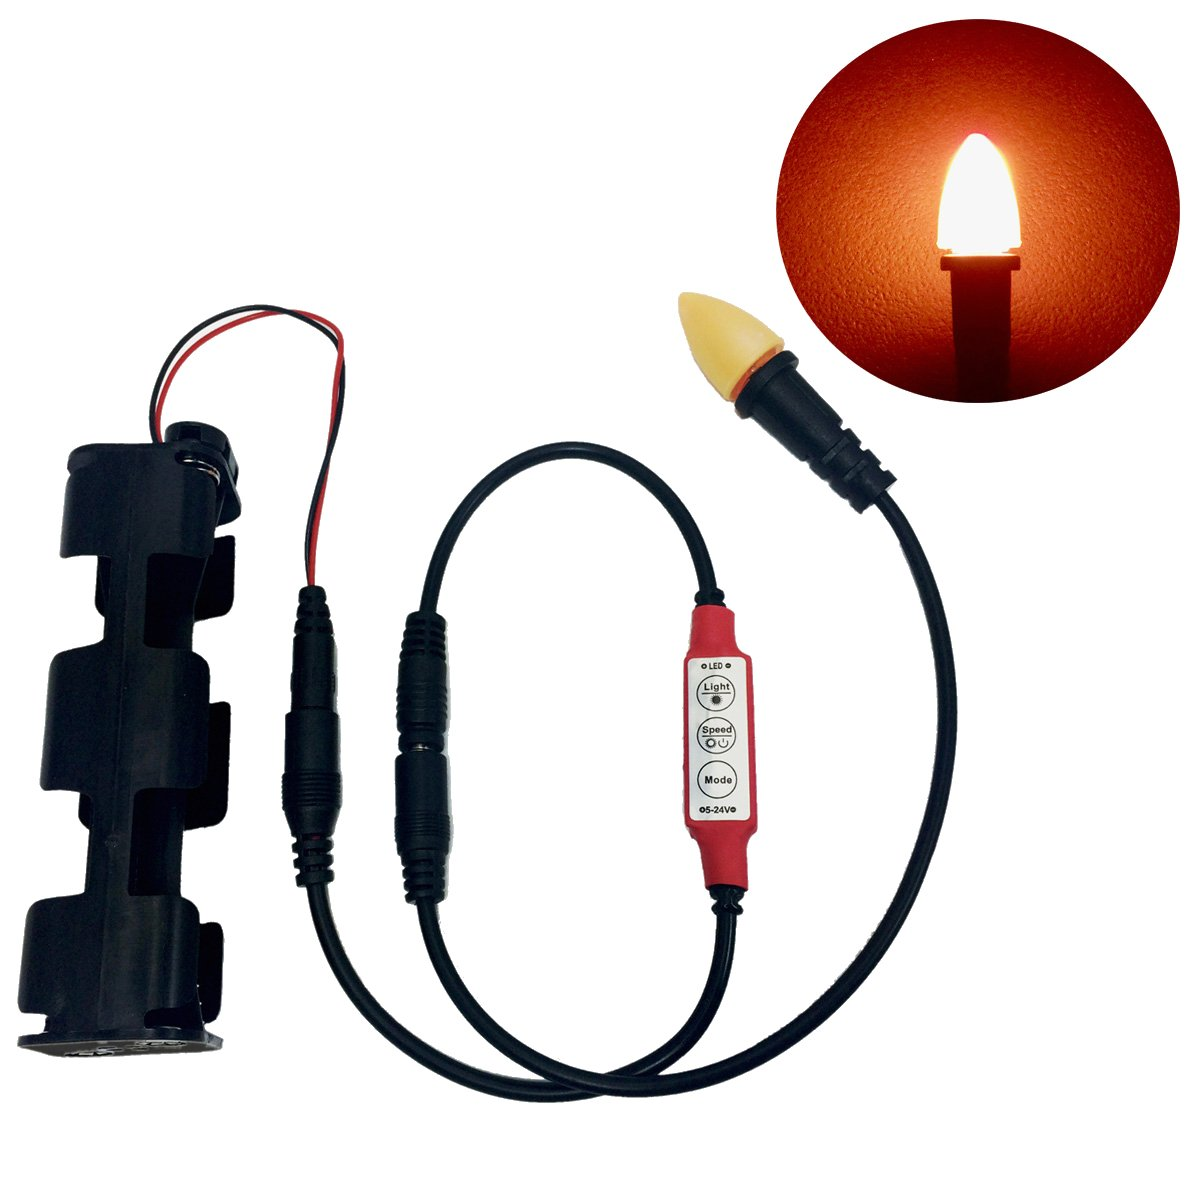 Cheap Flicker Light Circuit Find Deals On Led Candle With Realistic And Board Style Get Quotations Simulated Flame Effects Controller For Lanterns Candles Torches Props Scenery Faux Fire